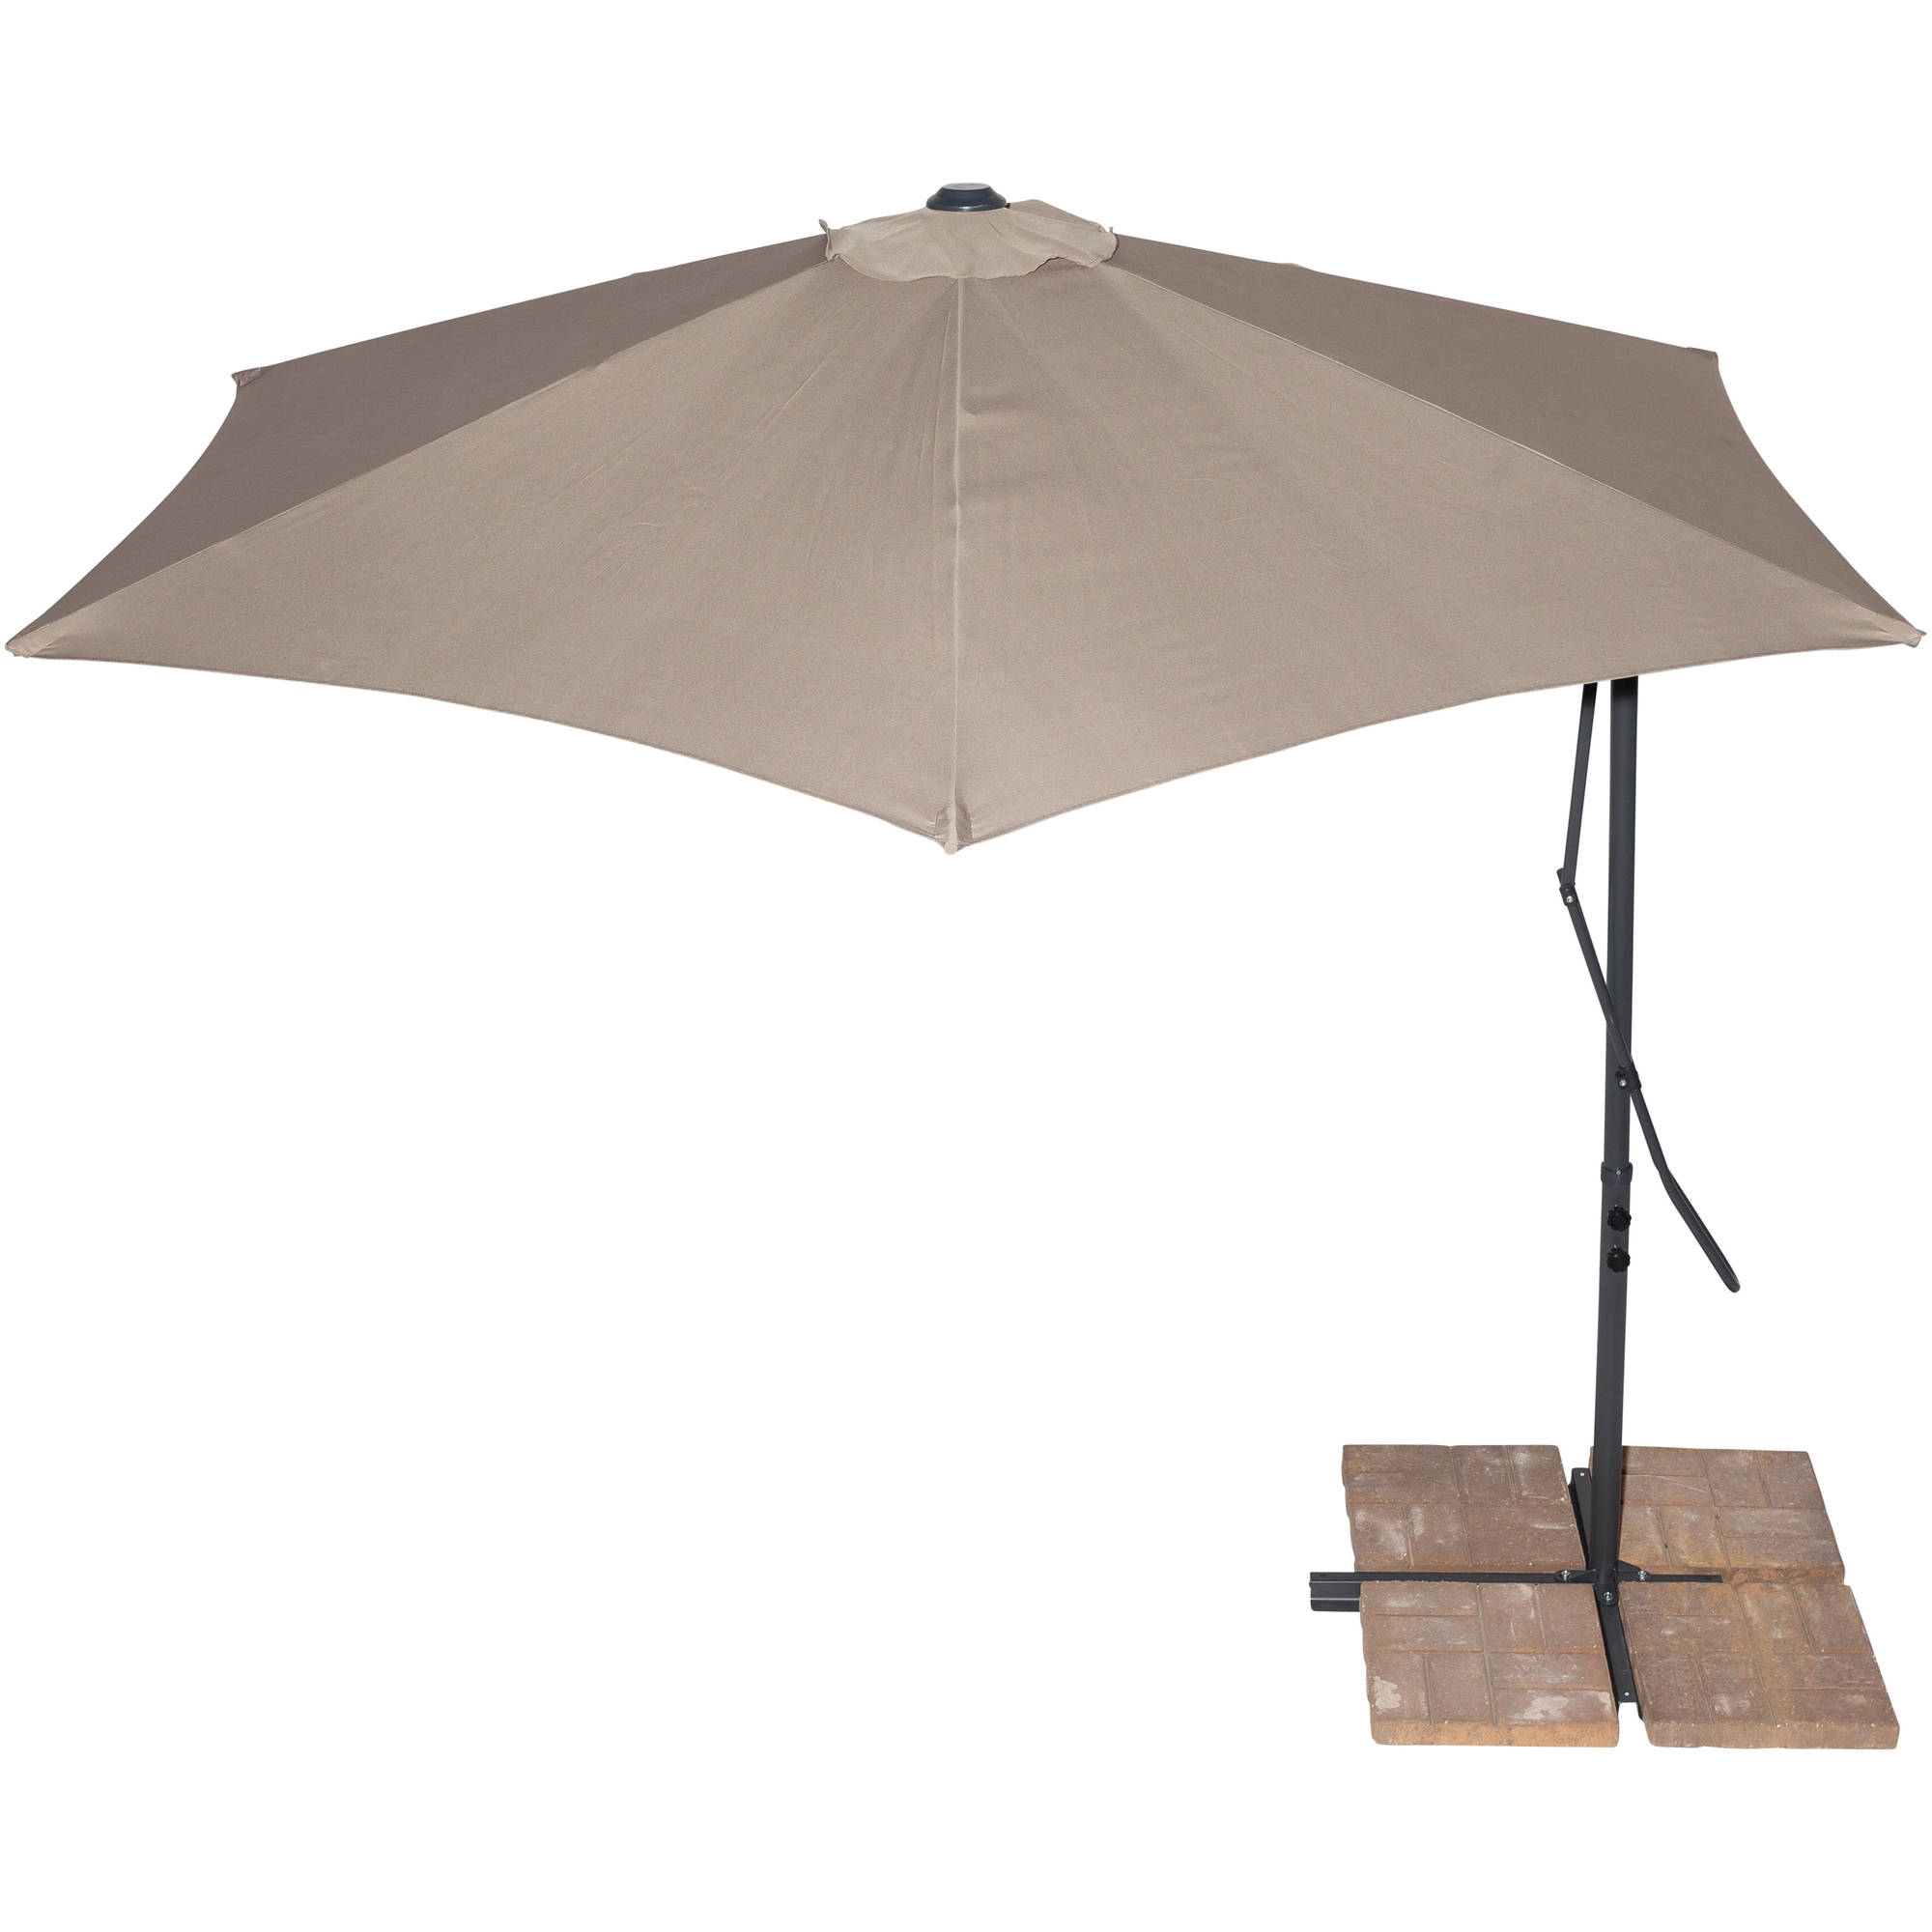 Anna Cantilever Umbrellas Throughout Most Recent California Sun Shades 10' Cantilever Umbrella, Tan (Gallery 17 of 20)